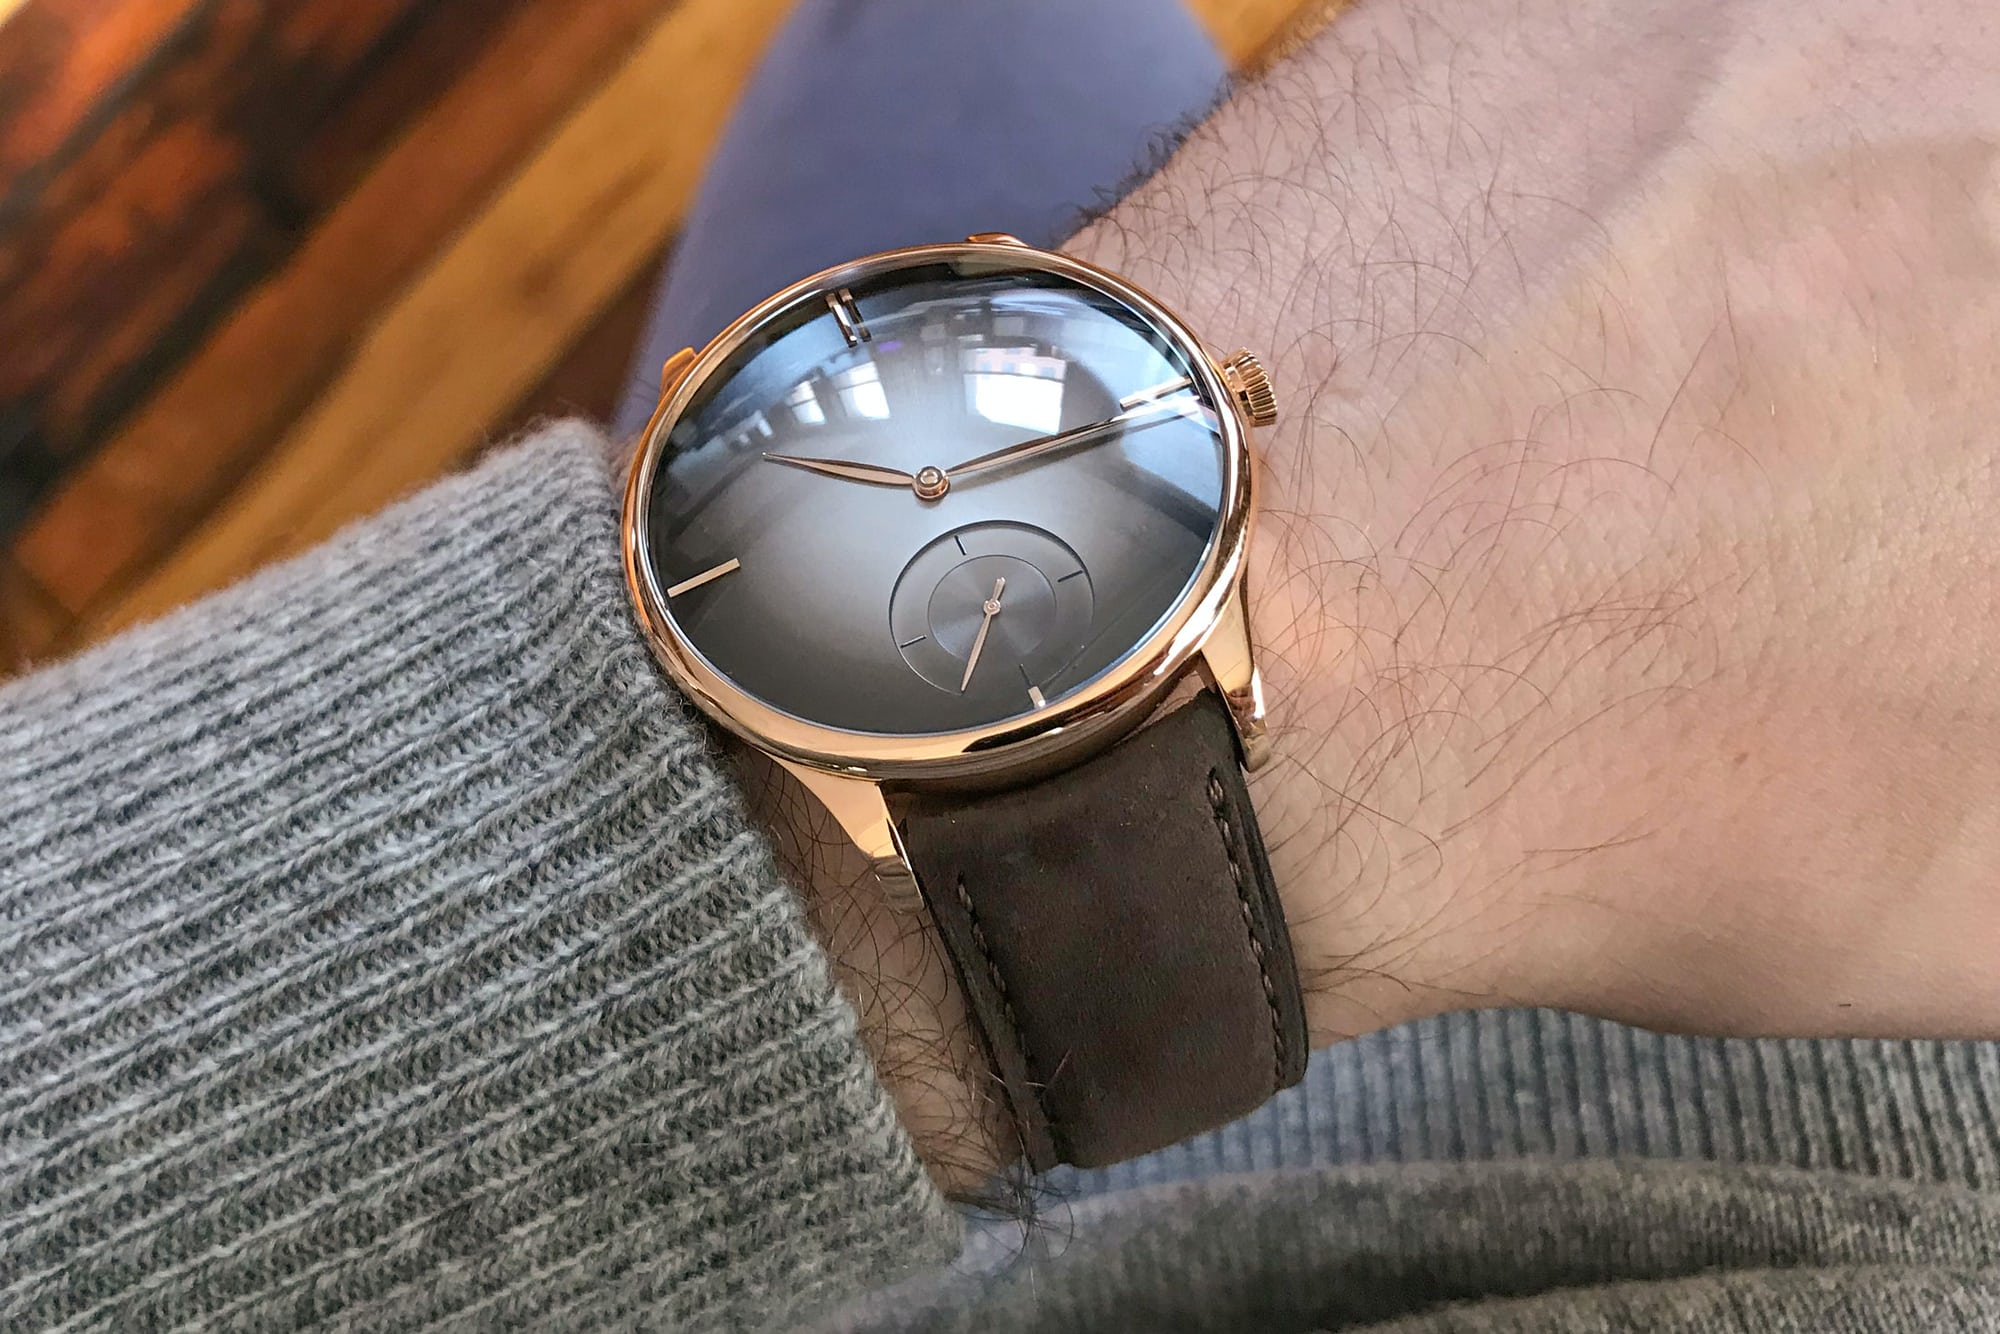 h moser venturer small seconds purity wristshot Hands-On: The H. Moser Venturer Small Seconds Purity Hands-On: The H. Moser Venturer Small Seconds Purity purity 09